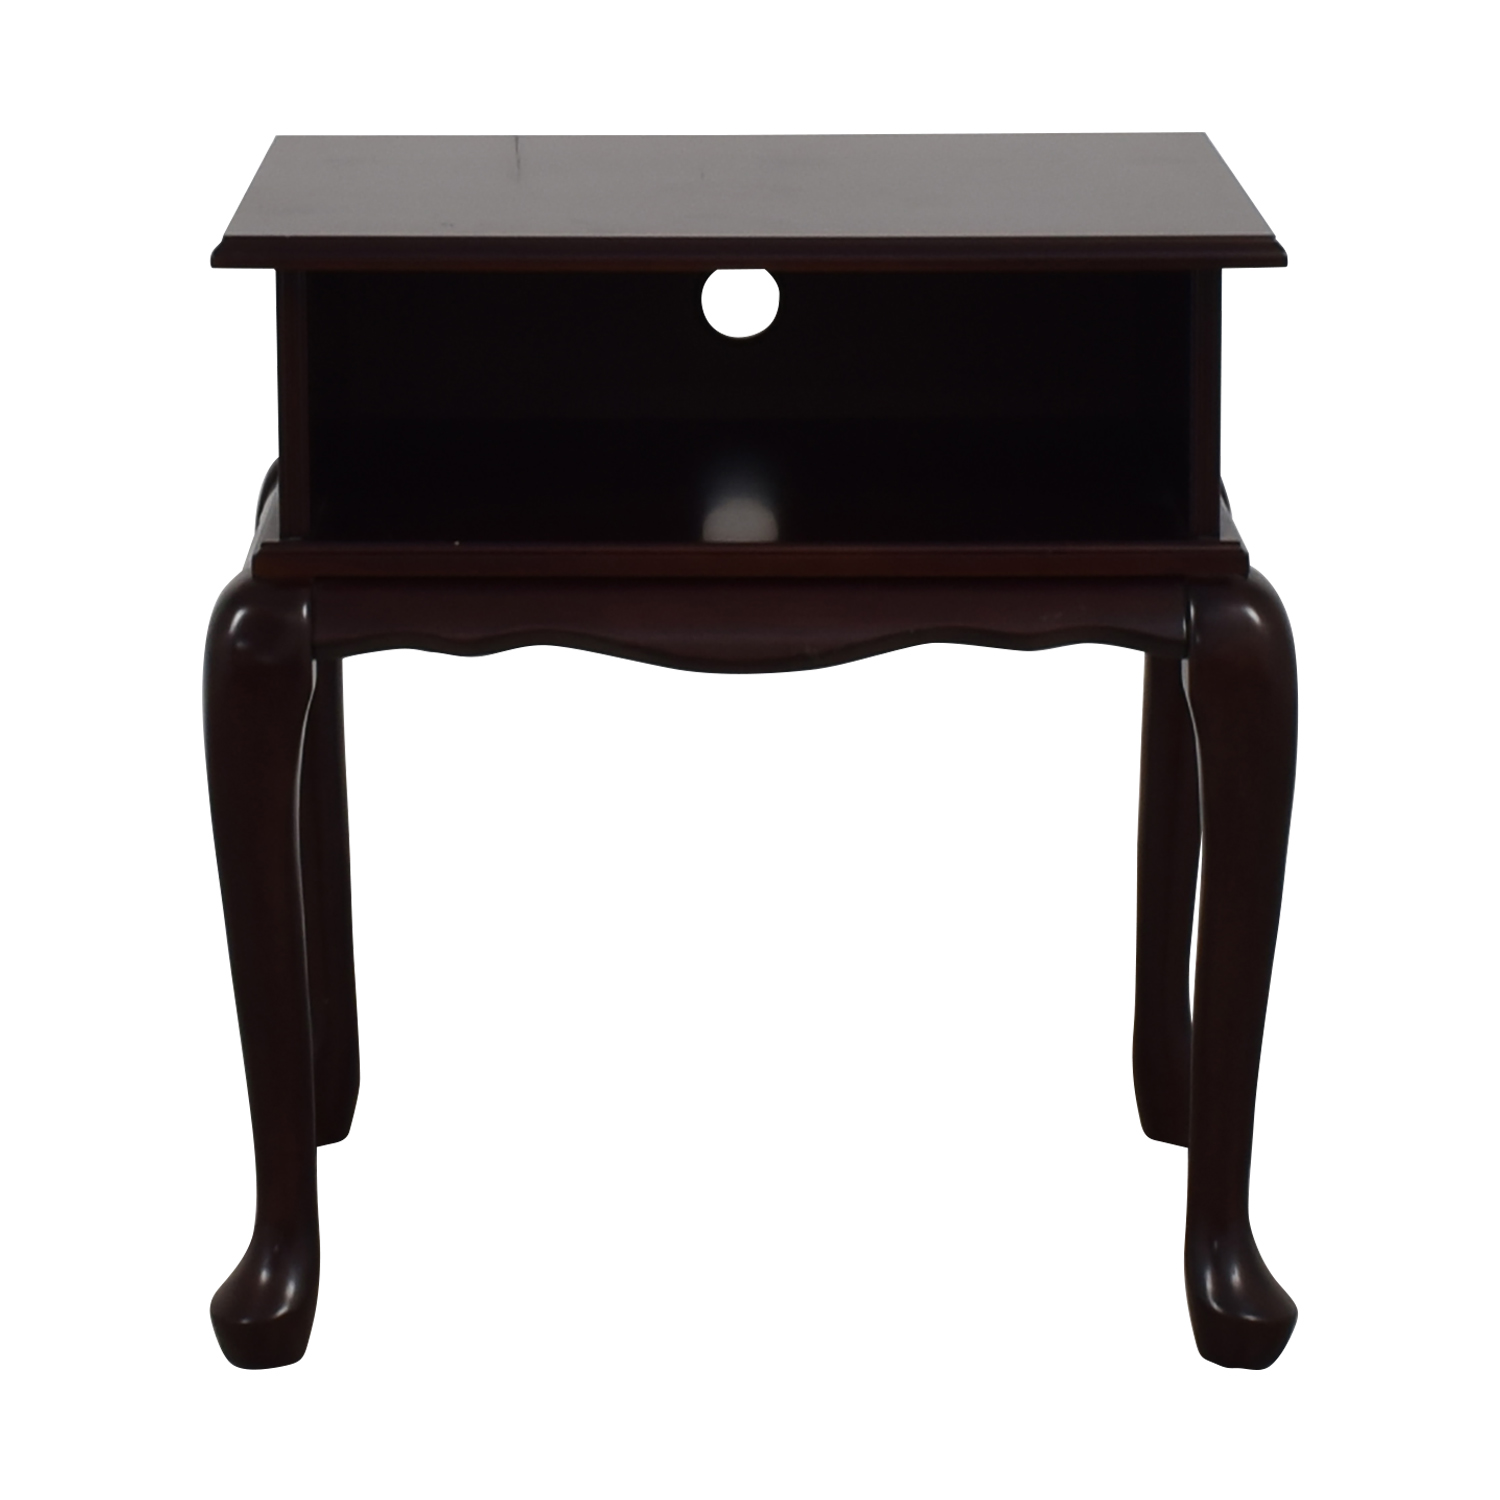 Bombay Dovetailed Wood End Table / Tables